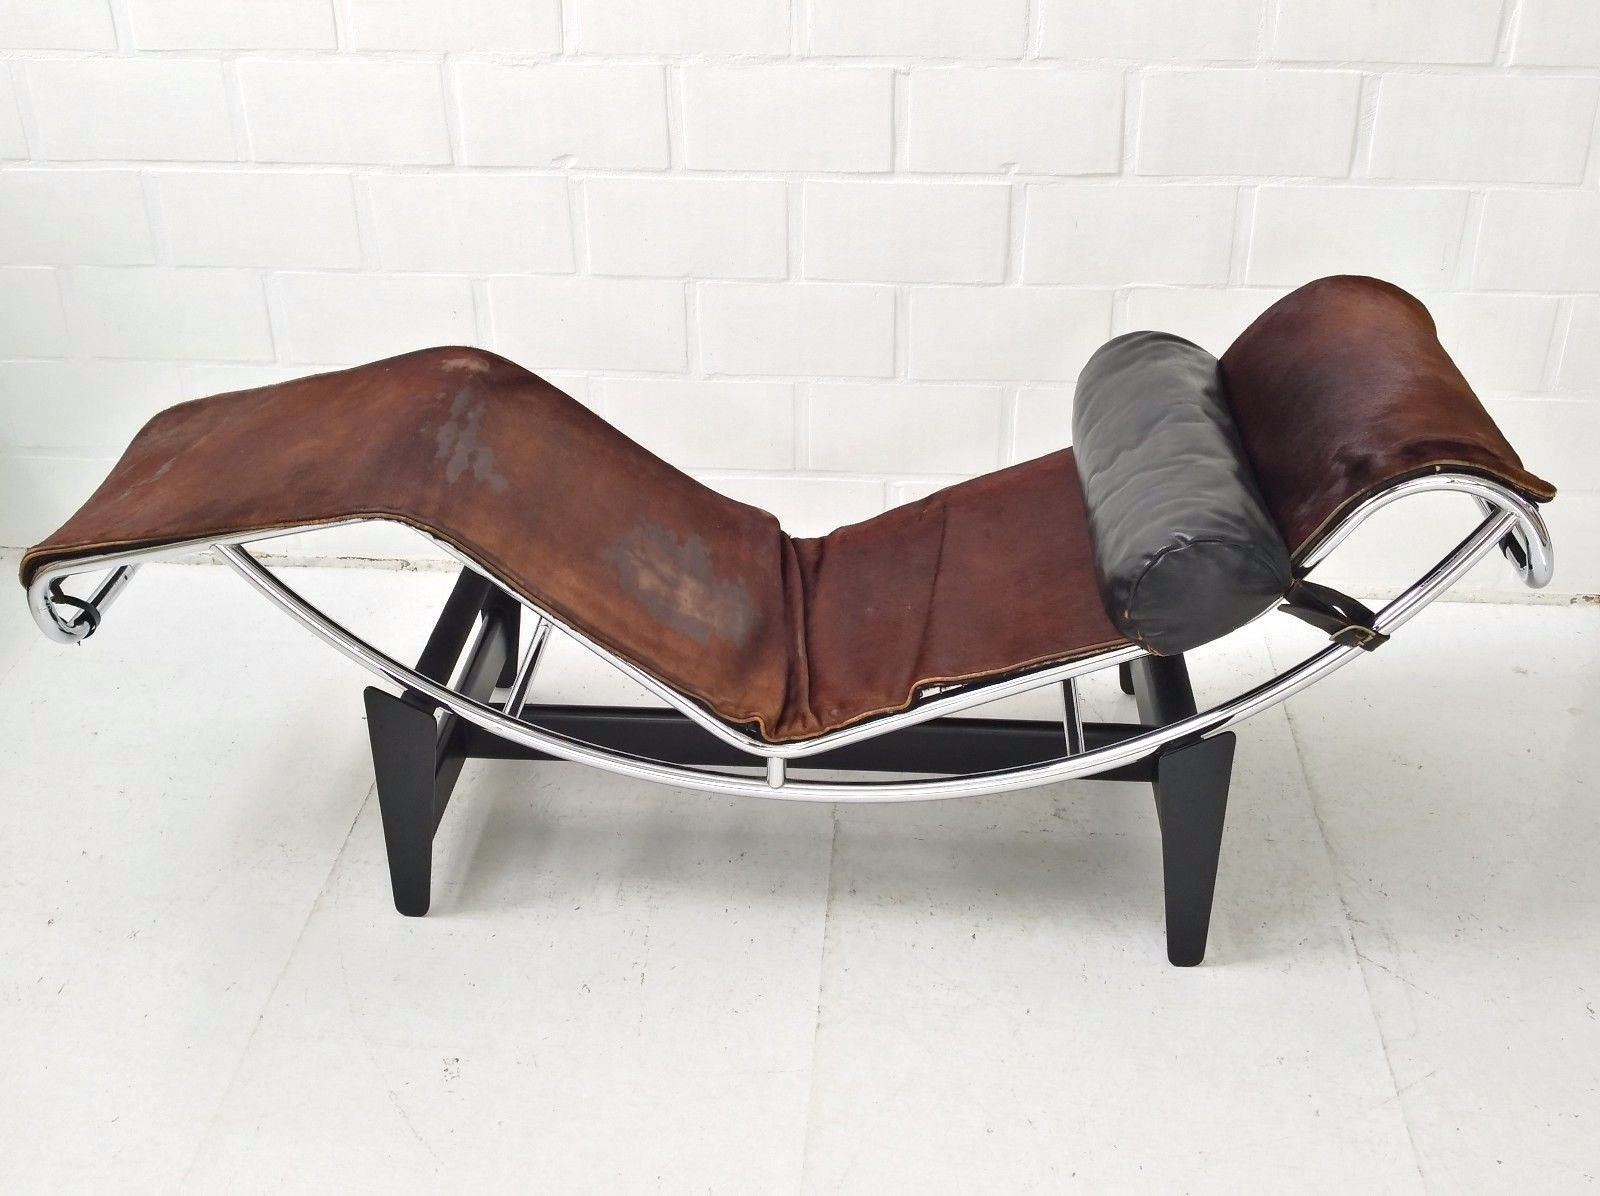 Chaise Longue Suisse Lc4 Chaise Longue By Le Corbusier Charlotte Perriand